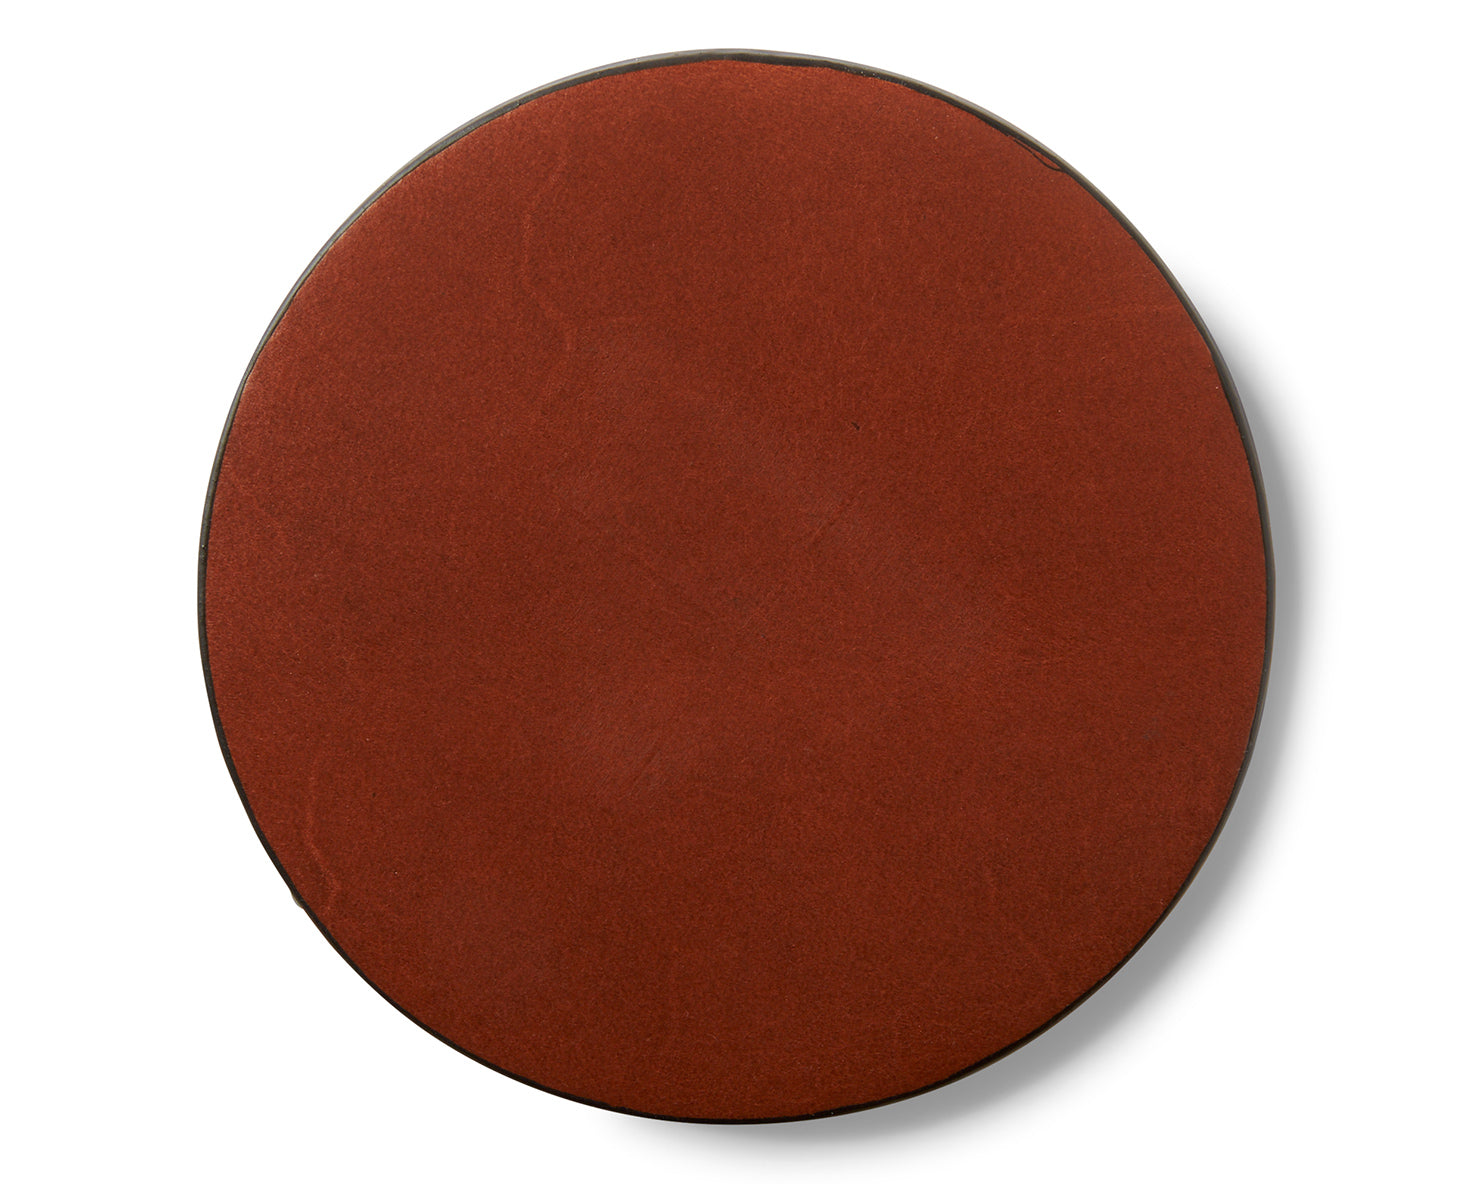 COASTER SET | KILLSPENCER® - Cognac Bullhide Leather